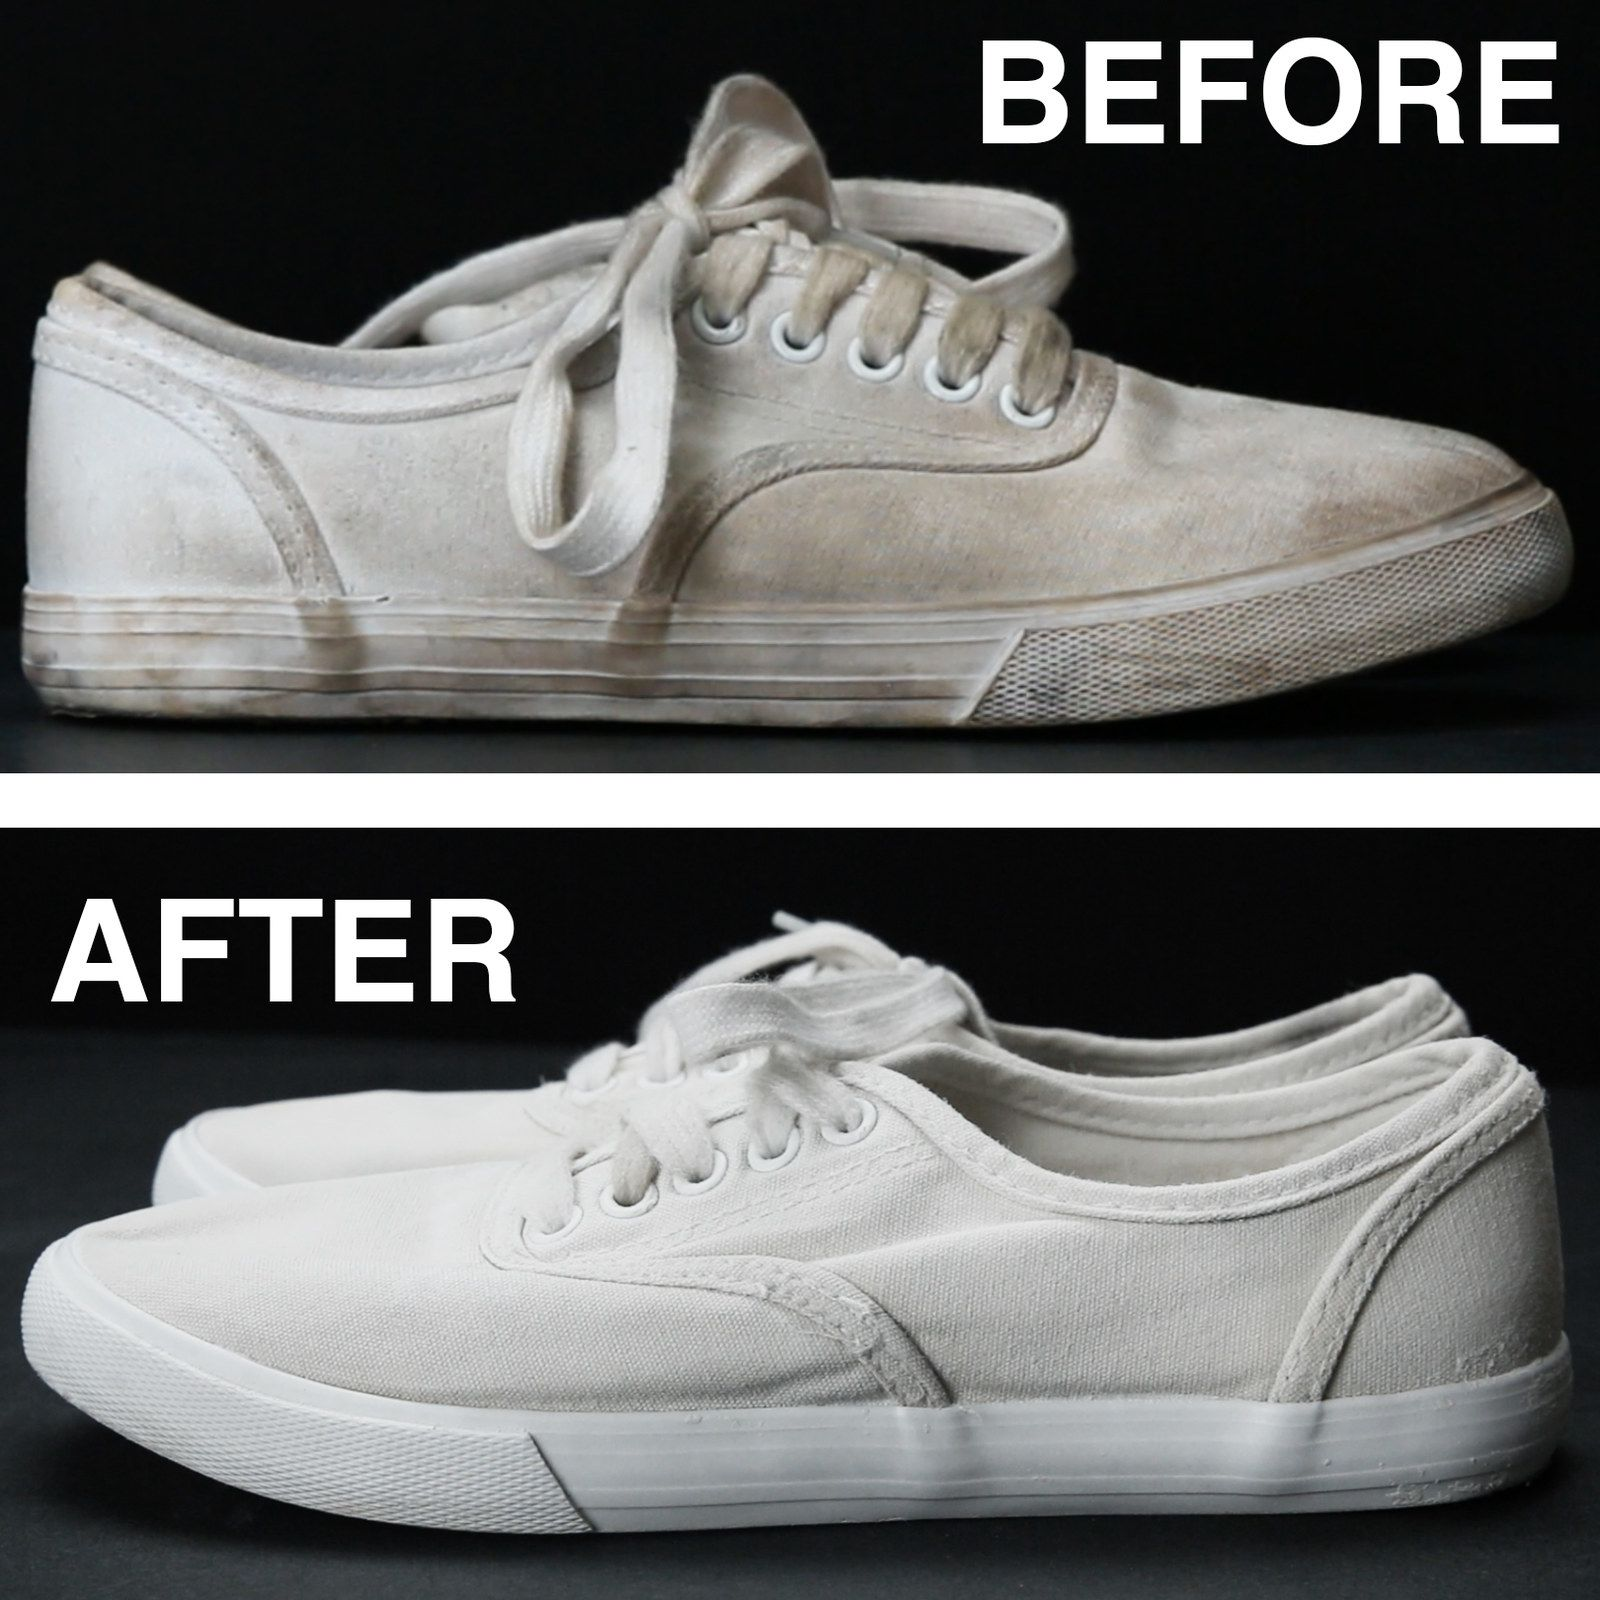 efb1d4d58f Finally There s An Easy Way To Clean Off Your White Shoes To Make Them Look  Brand New Again